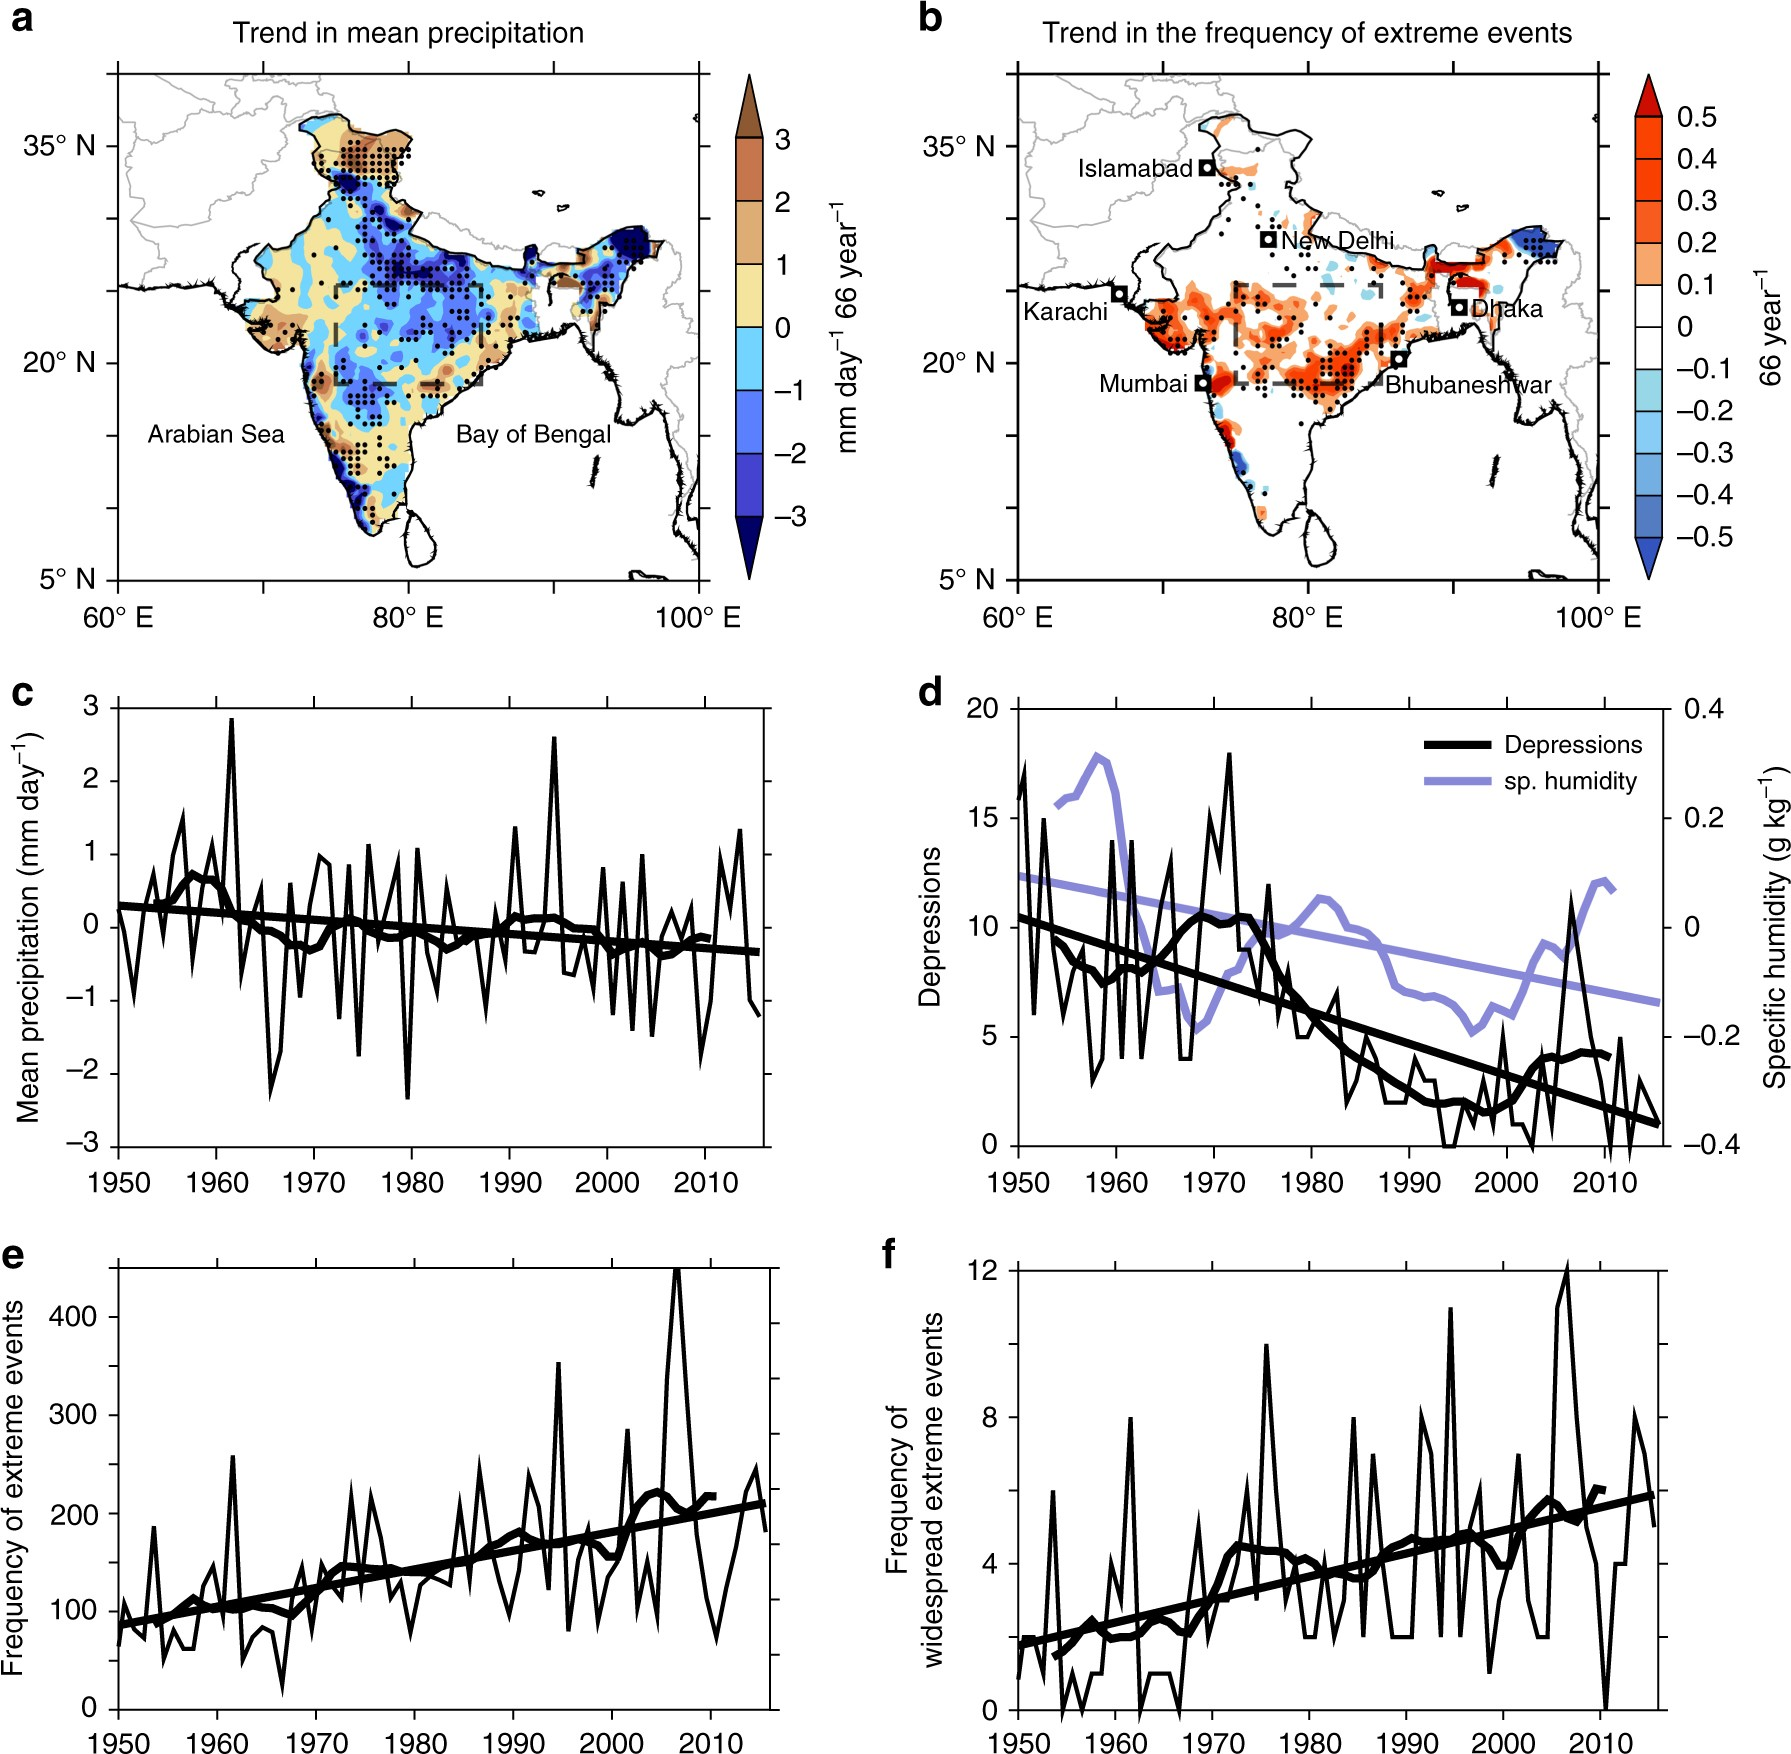 A threefold rise in widespread extreme rain events over